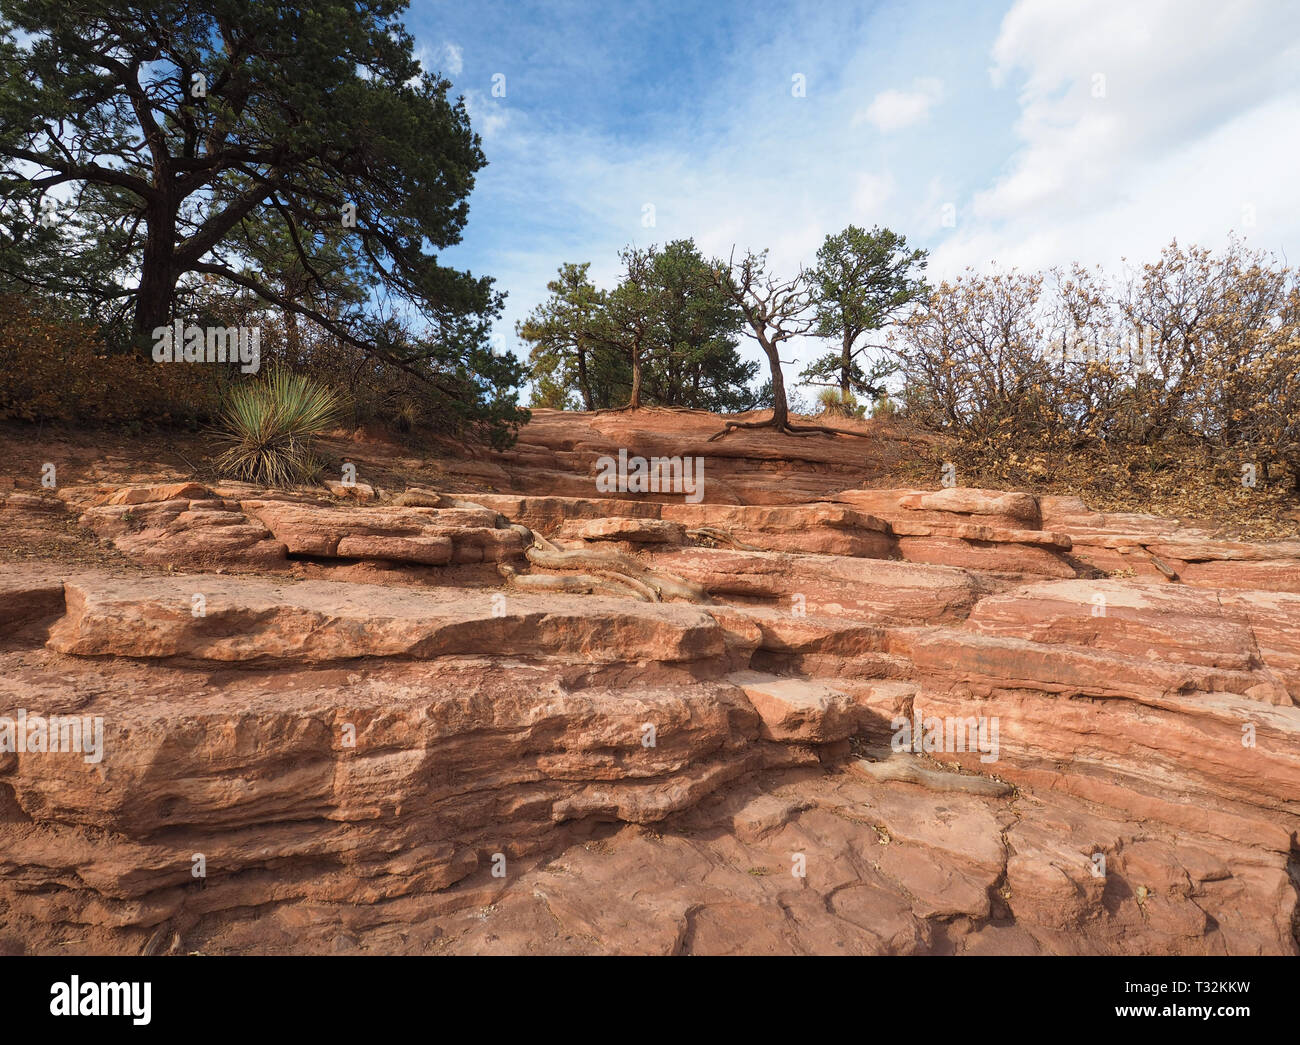 Red rock formations in the Garden of the Gods park in Colorado Springs, Colorado. - Stock Image